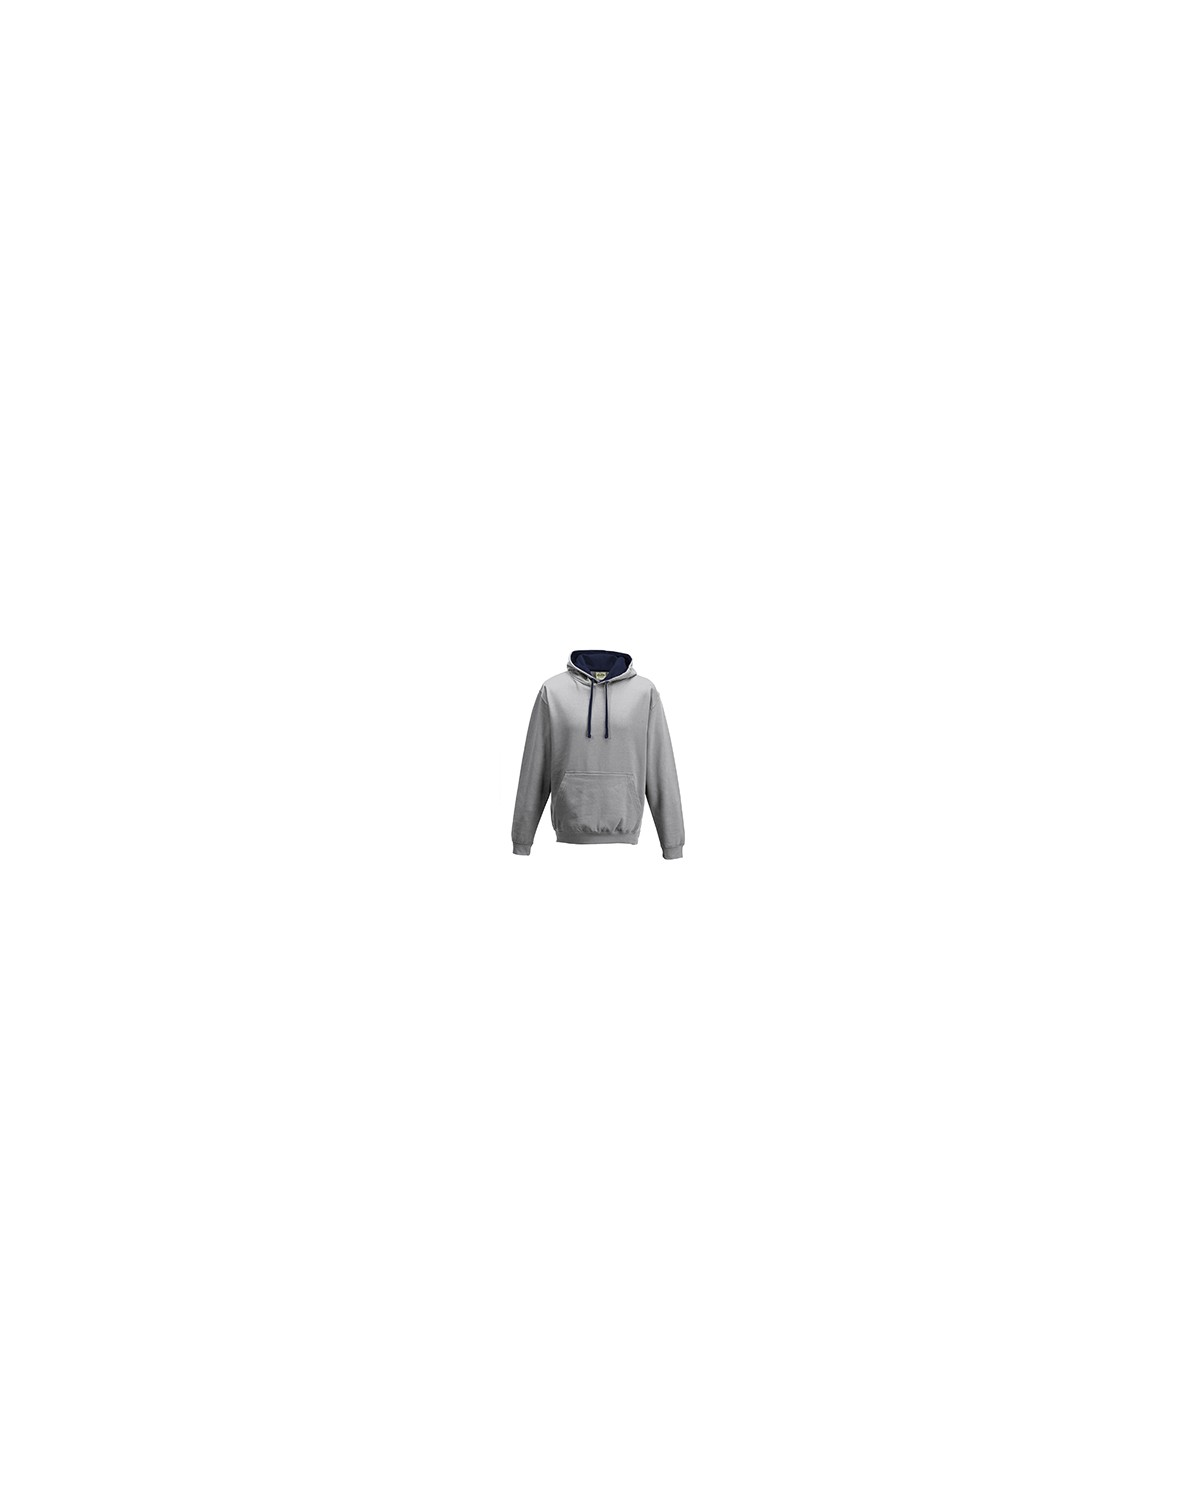 JHA003 Just Hoods By AWDis HTH GRY/ FRN NVY